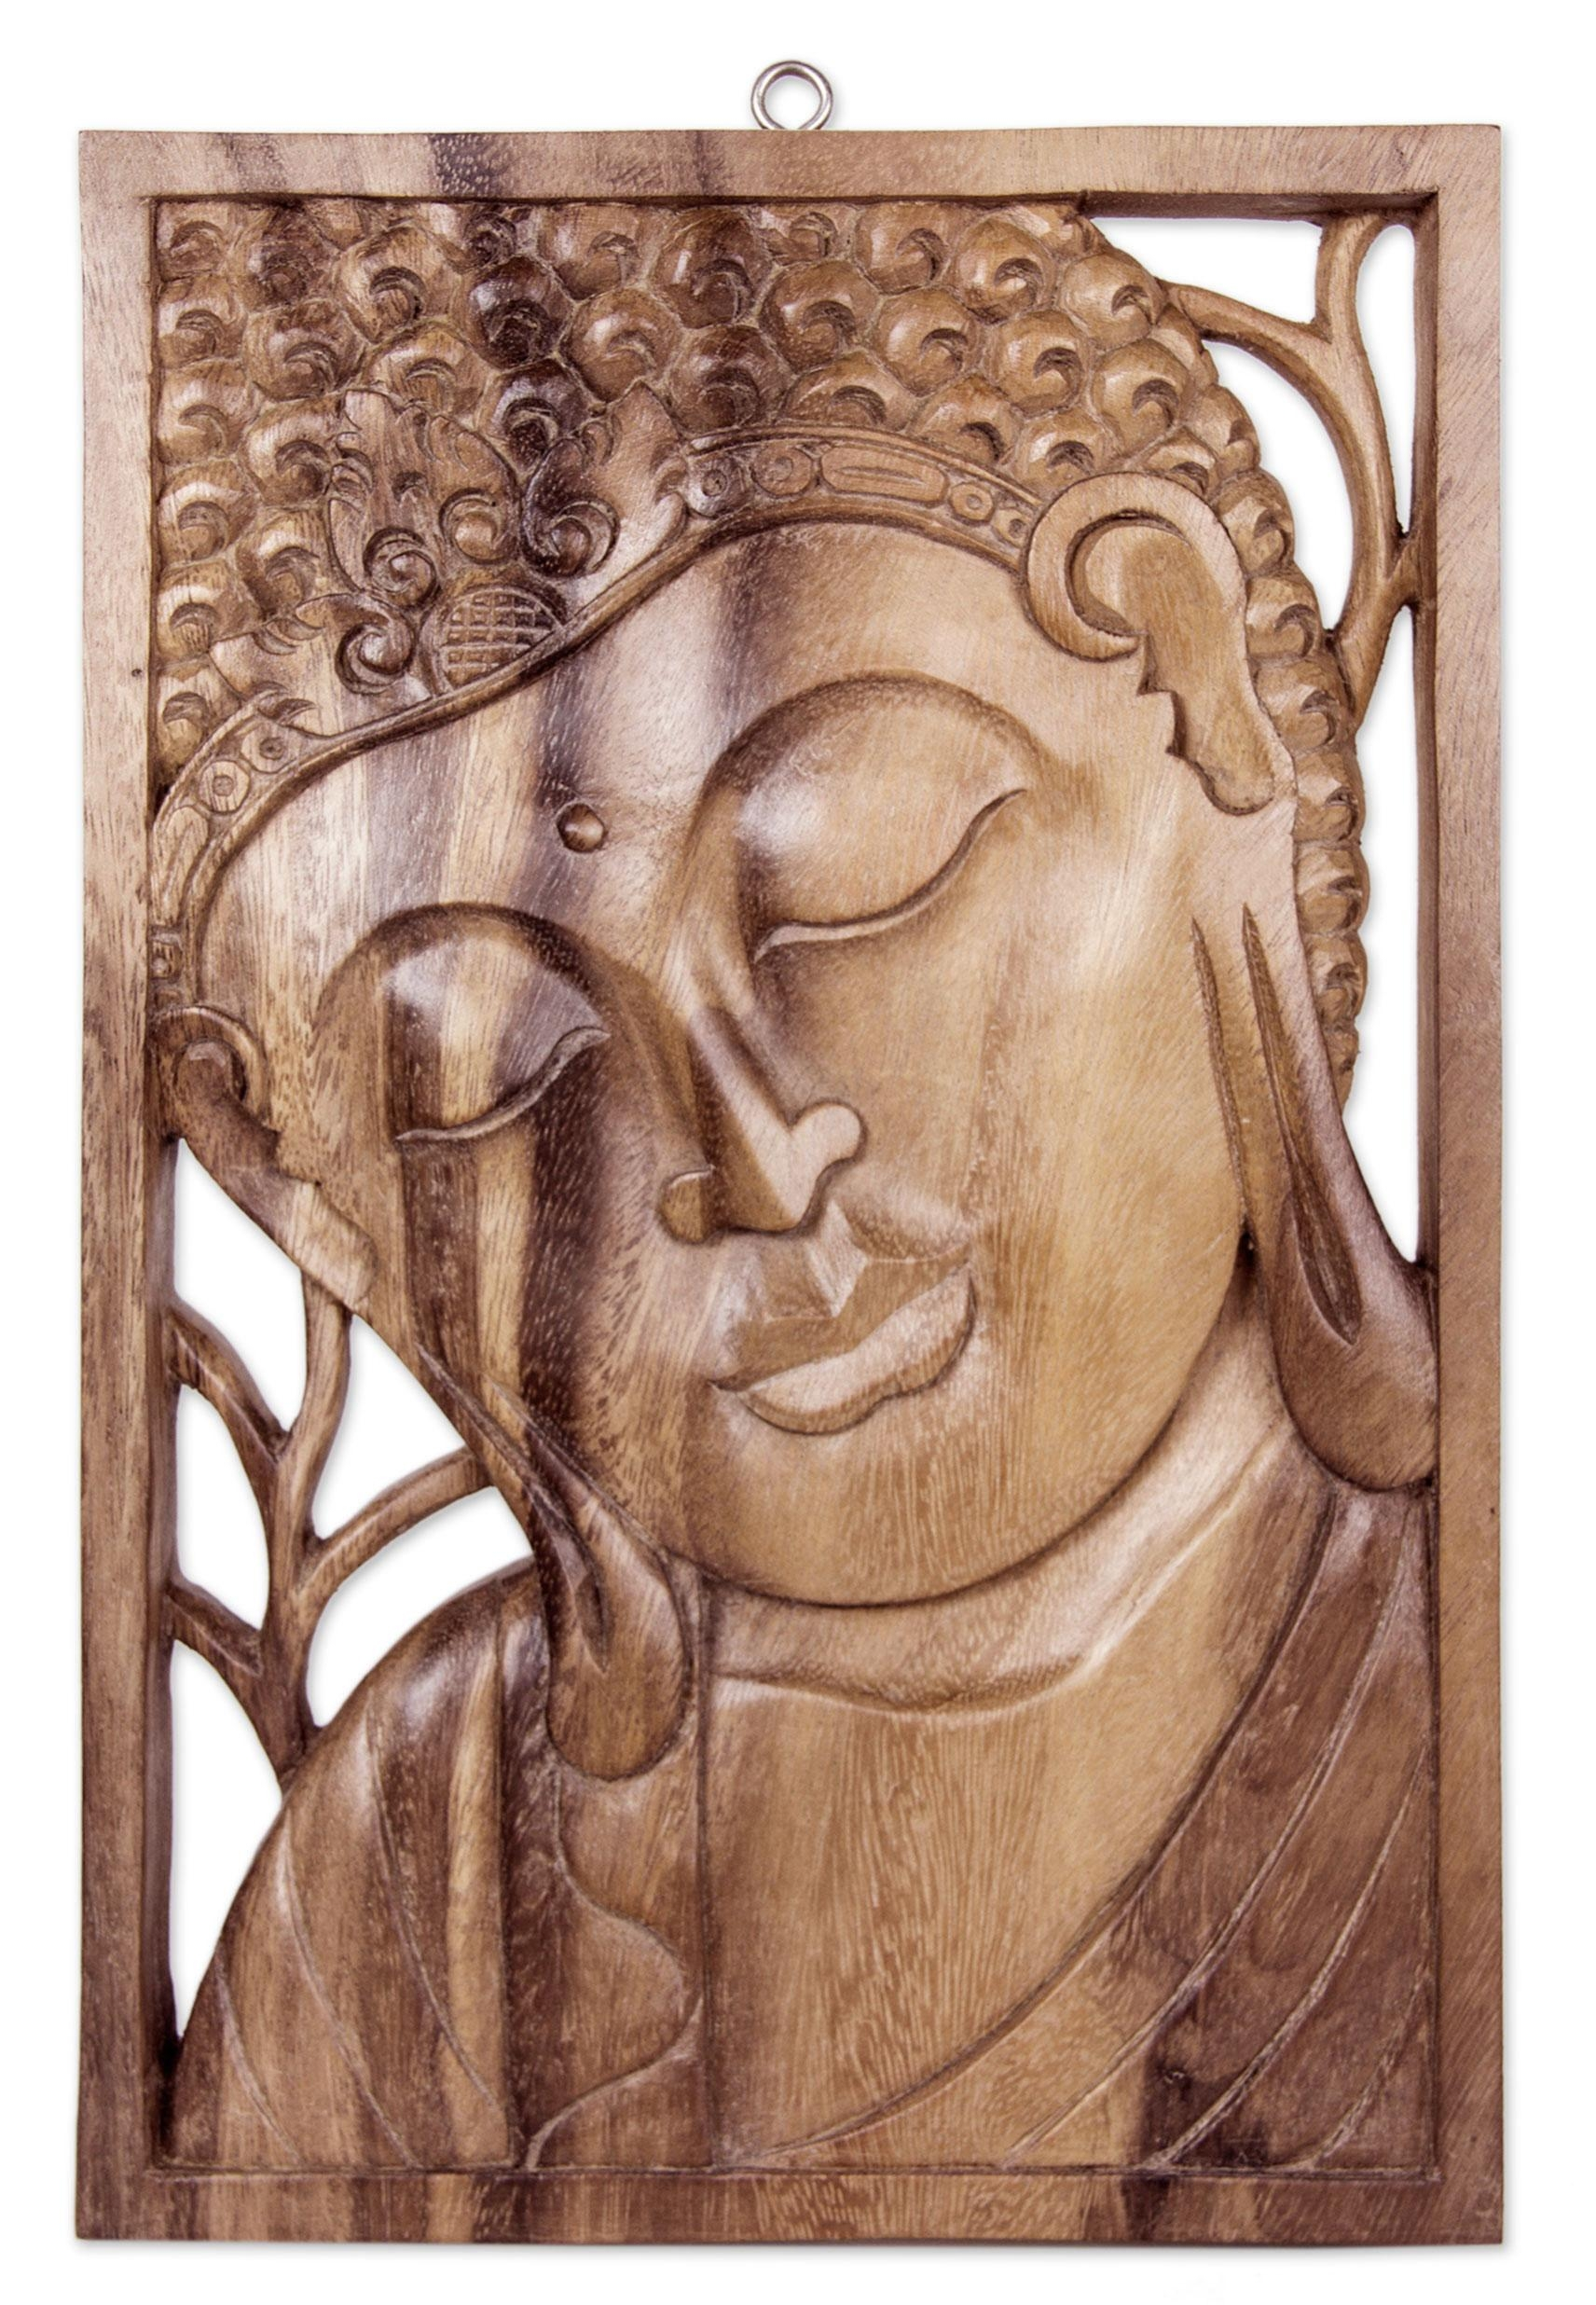 Zen Home Decor Ideas - Buddha Decor And Art | Novica with regard to Buddha Wood Wall Art